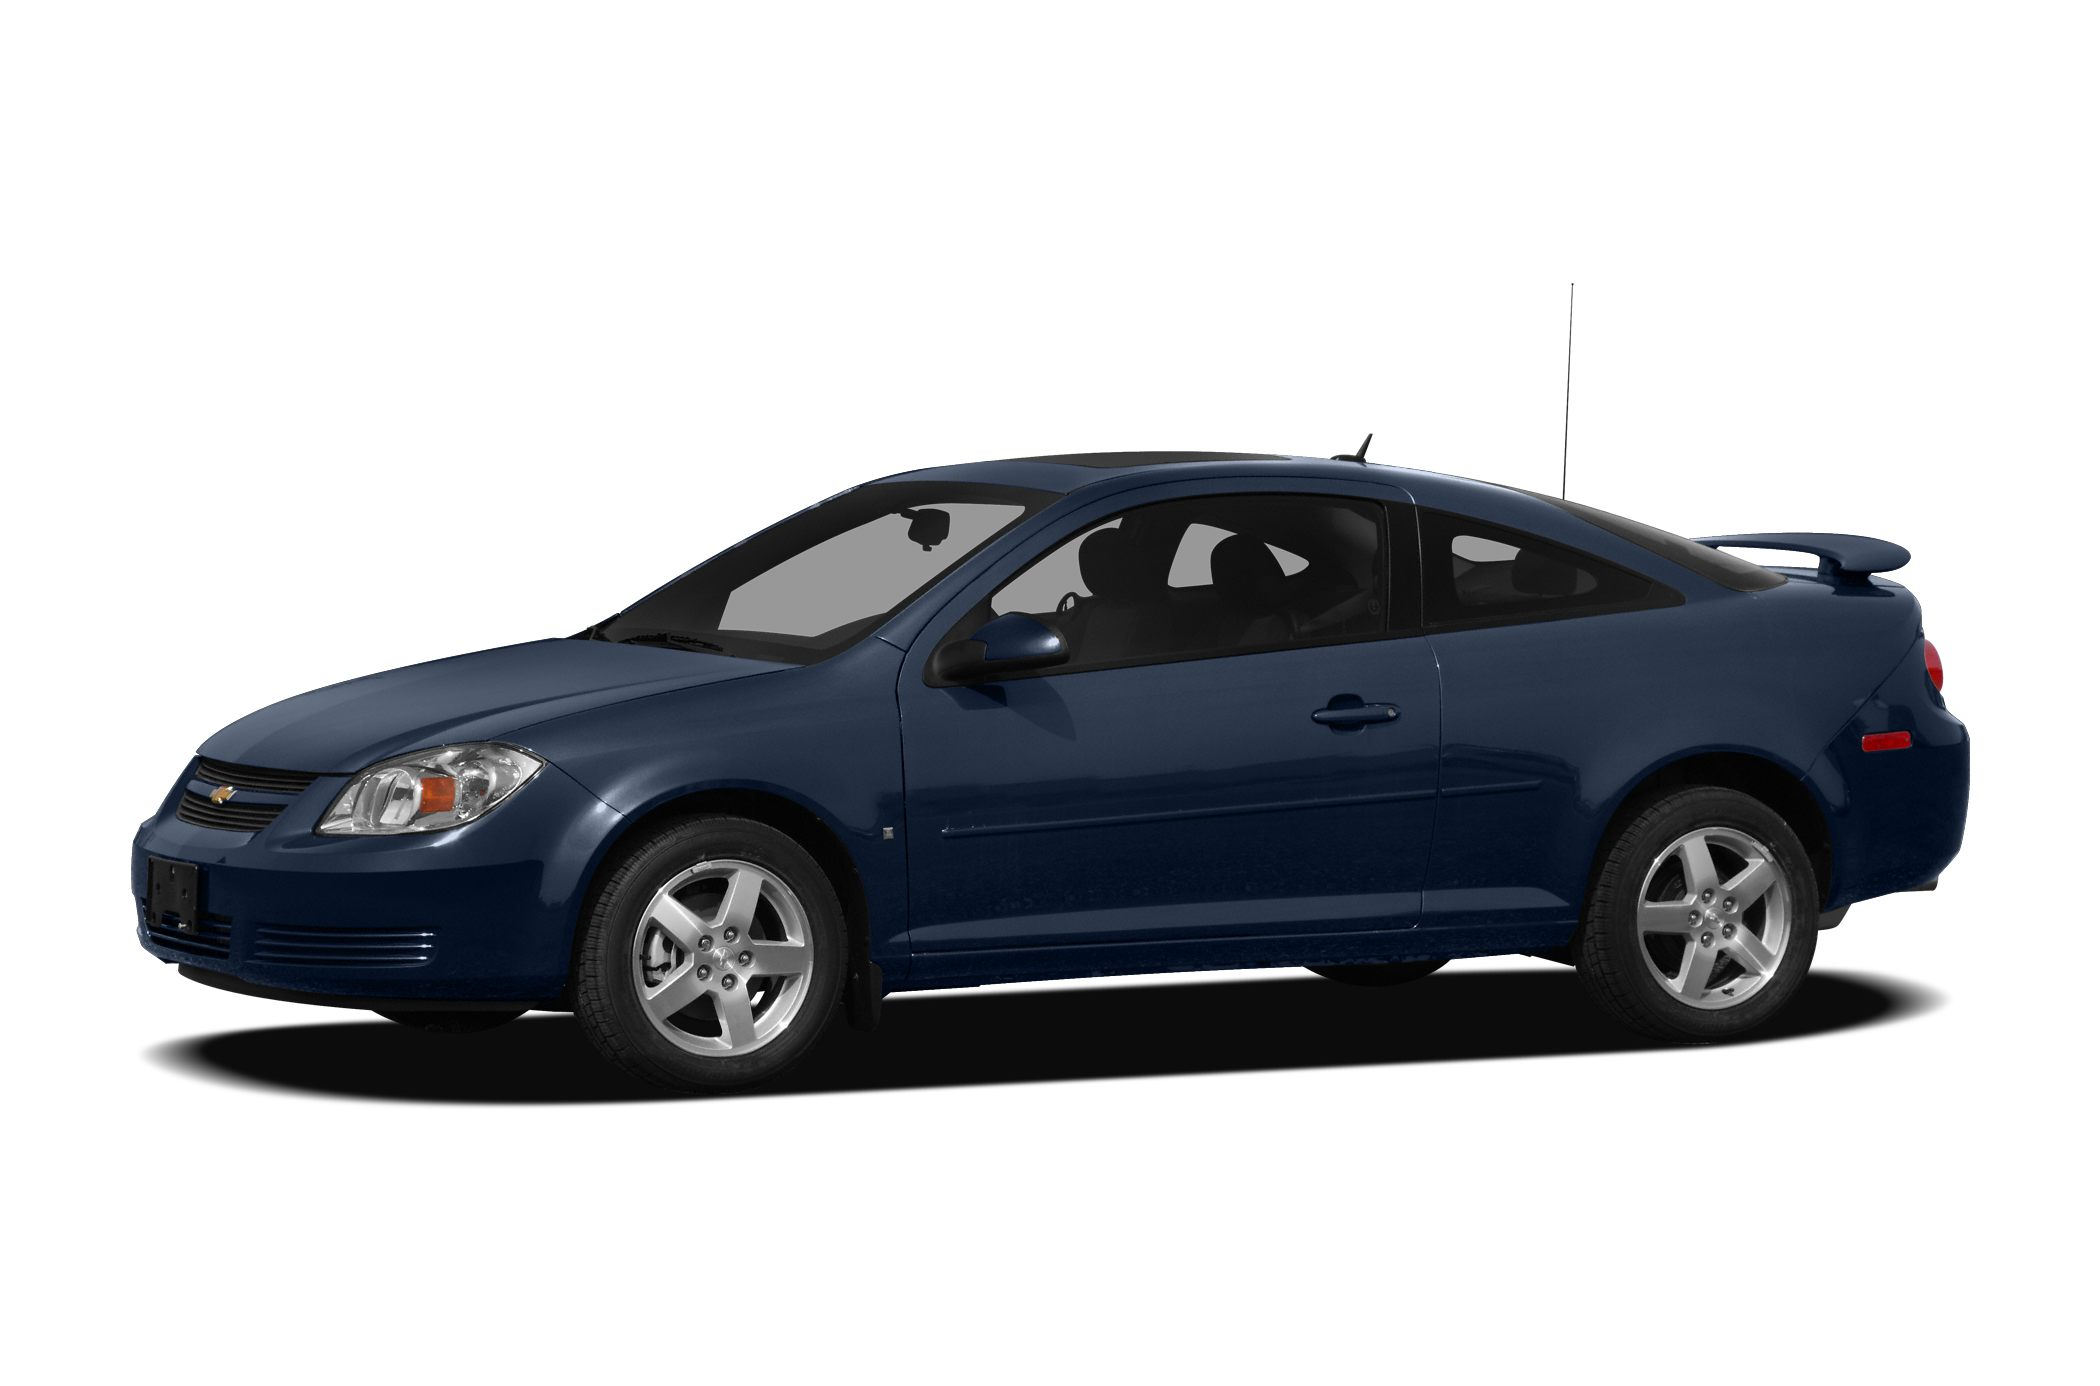 2009 Chevrolet Cobalt LT DISCLAIMER We are excited to offer this vehicle to you but it is current